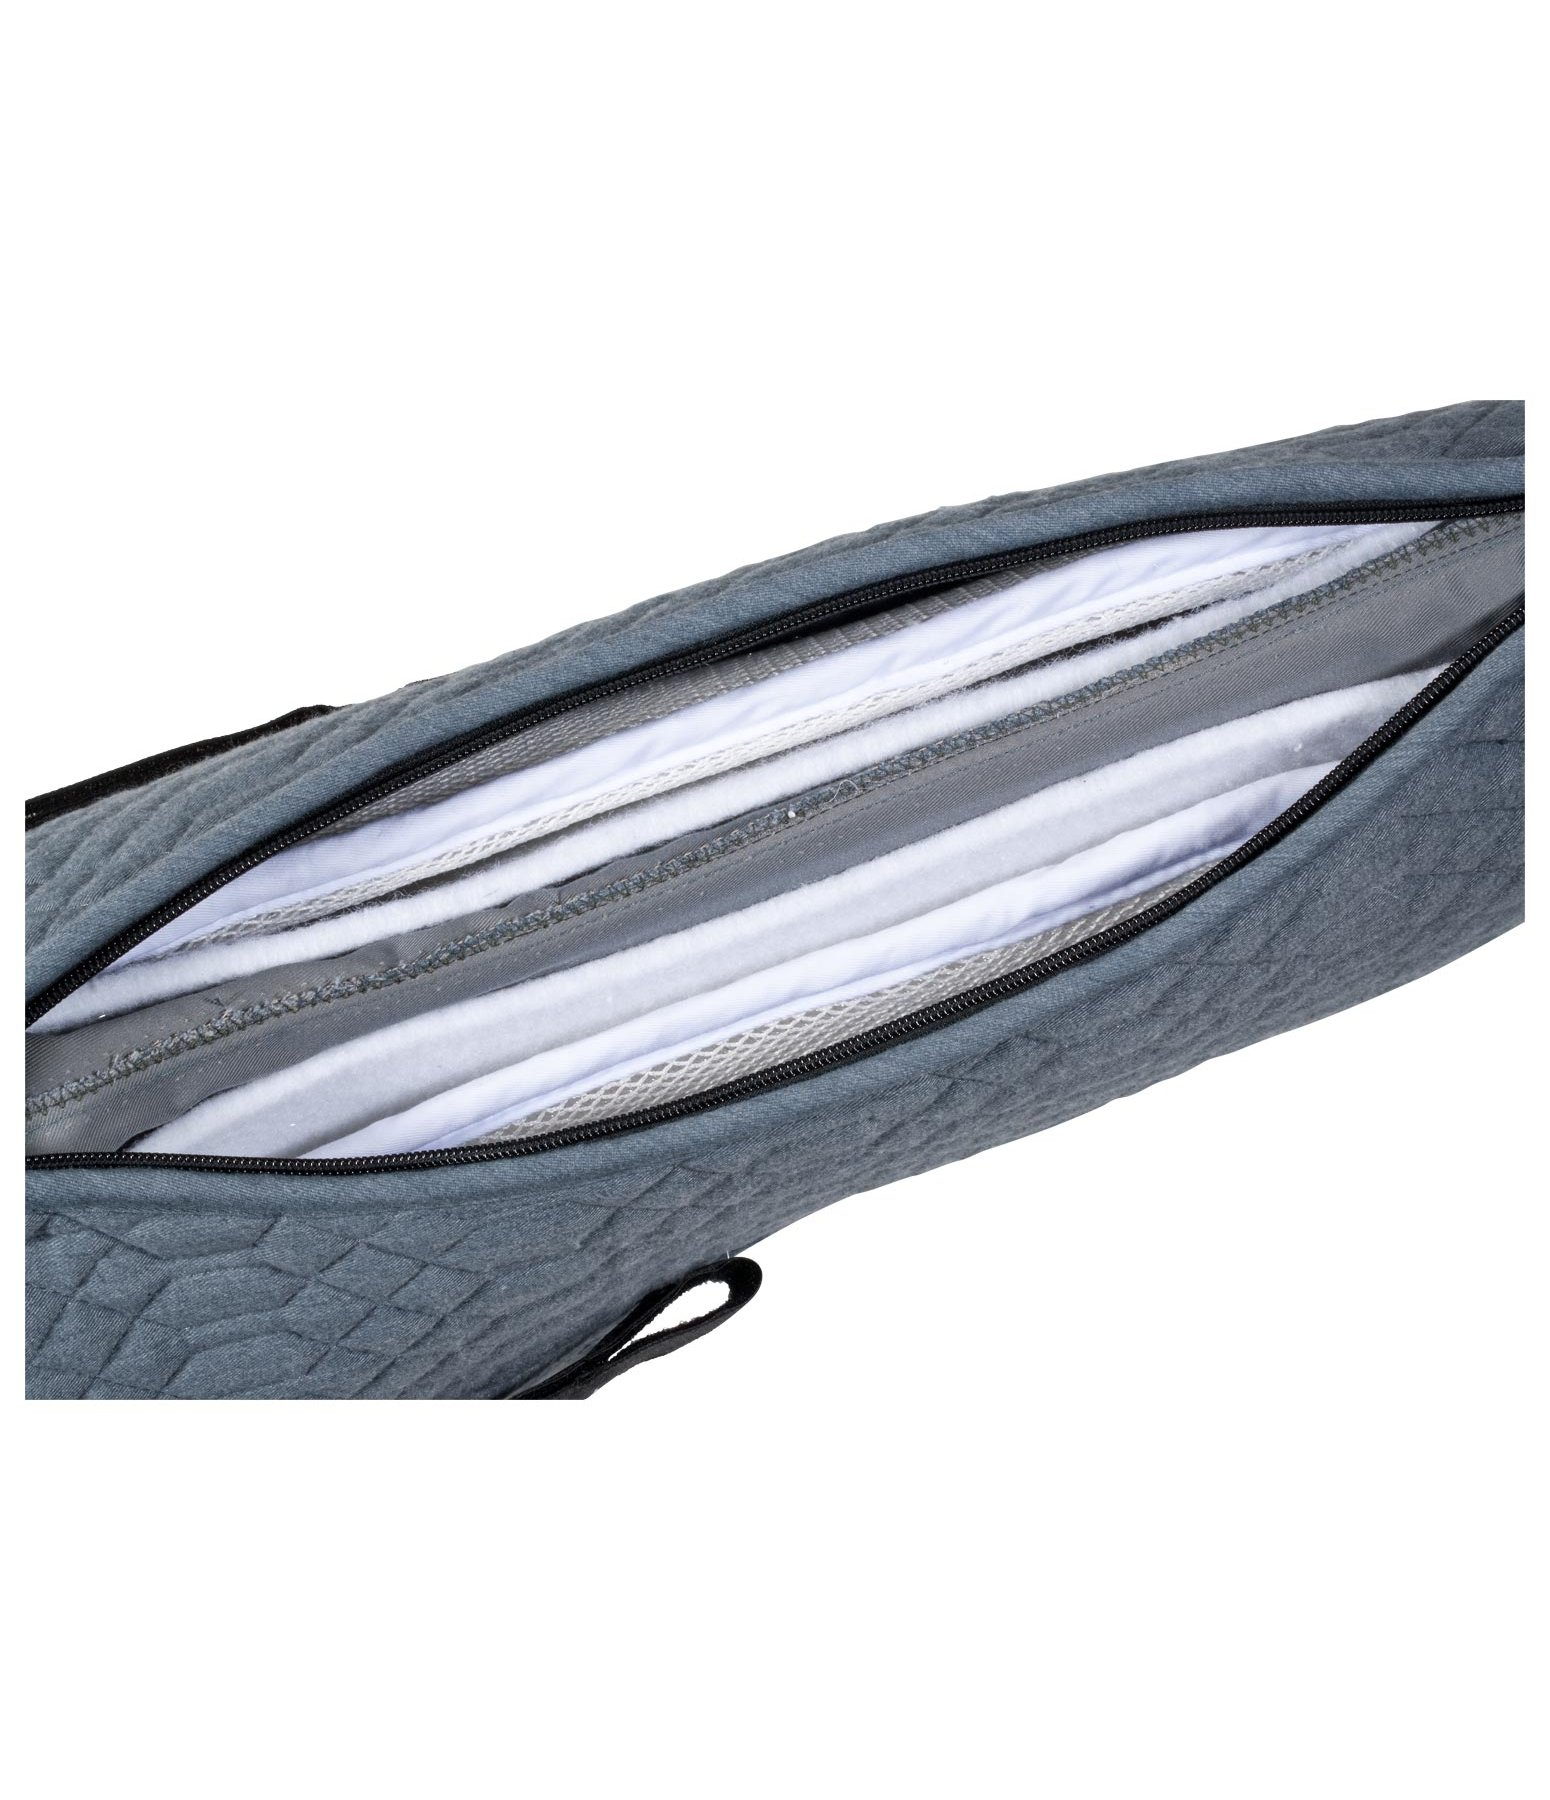 5c309281fd Felix Bühler Saddle Pad Muscle Pro with Correctional Inserts - 210893-DR-GR  -